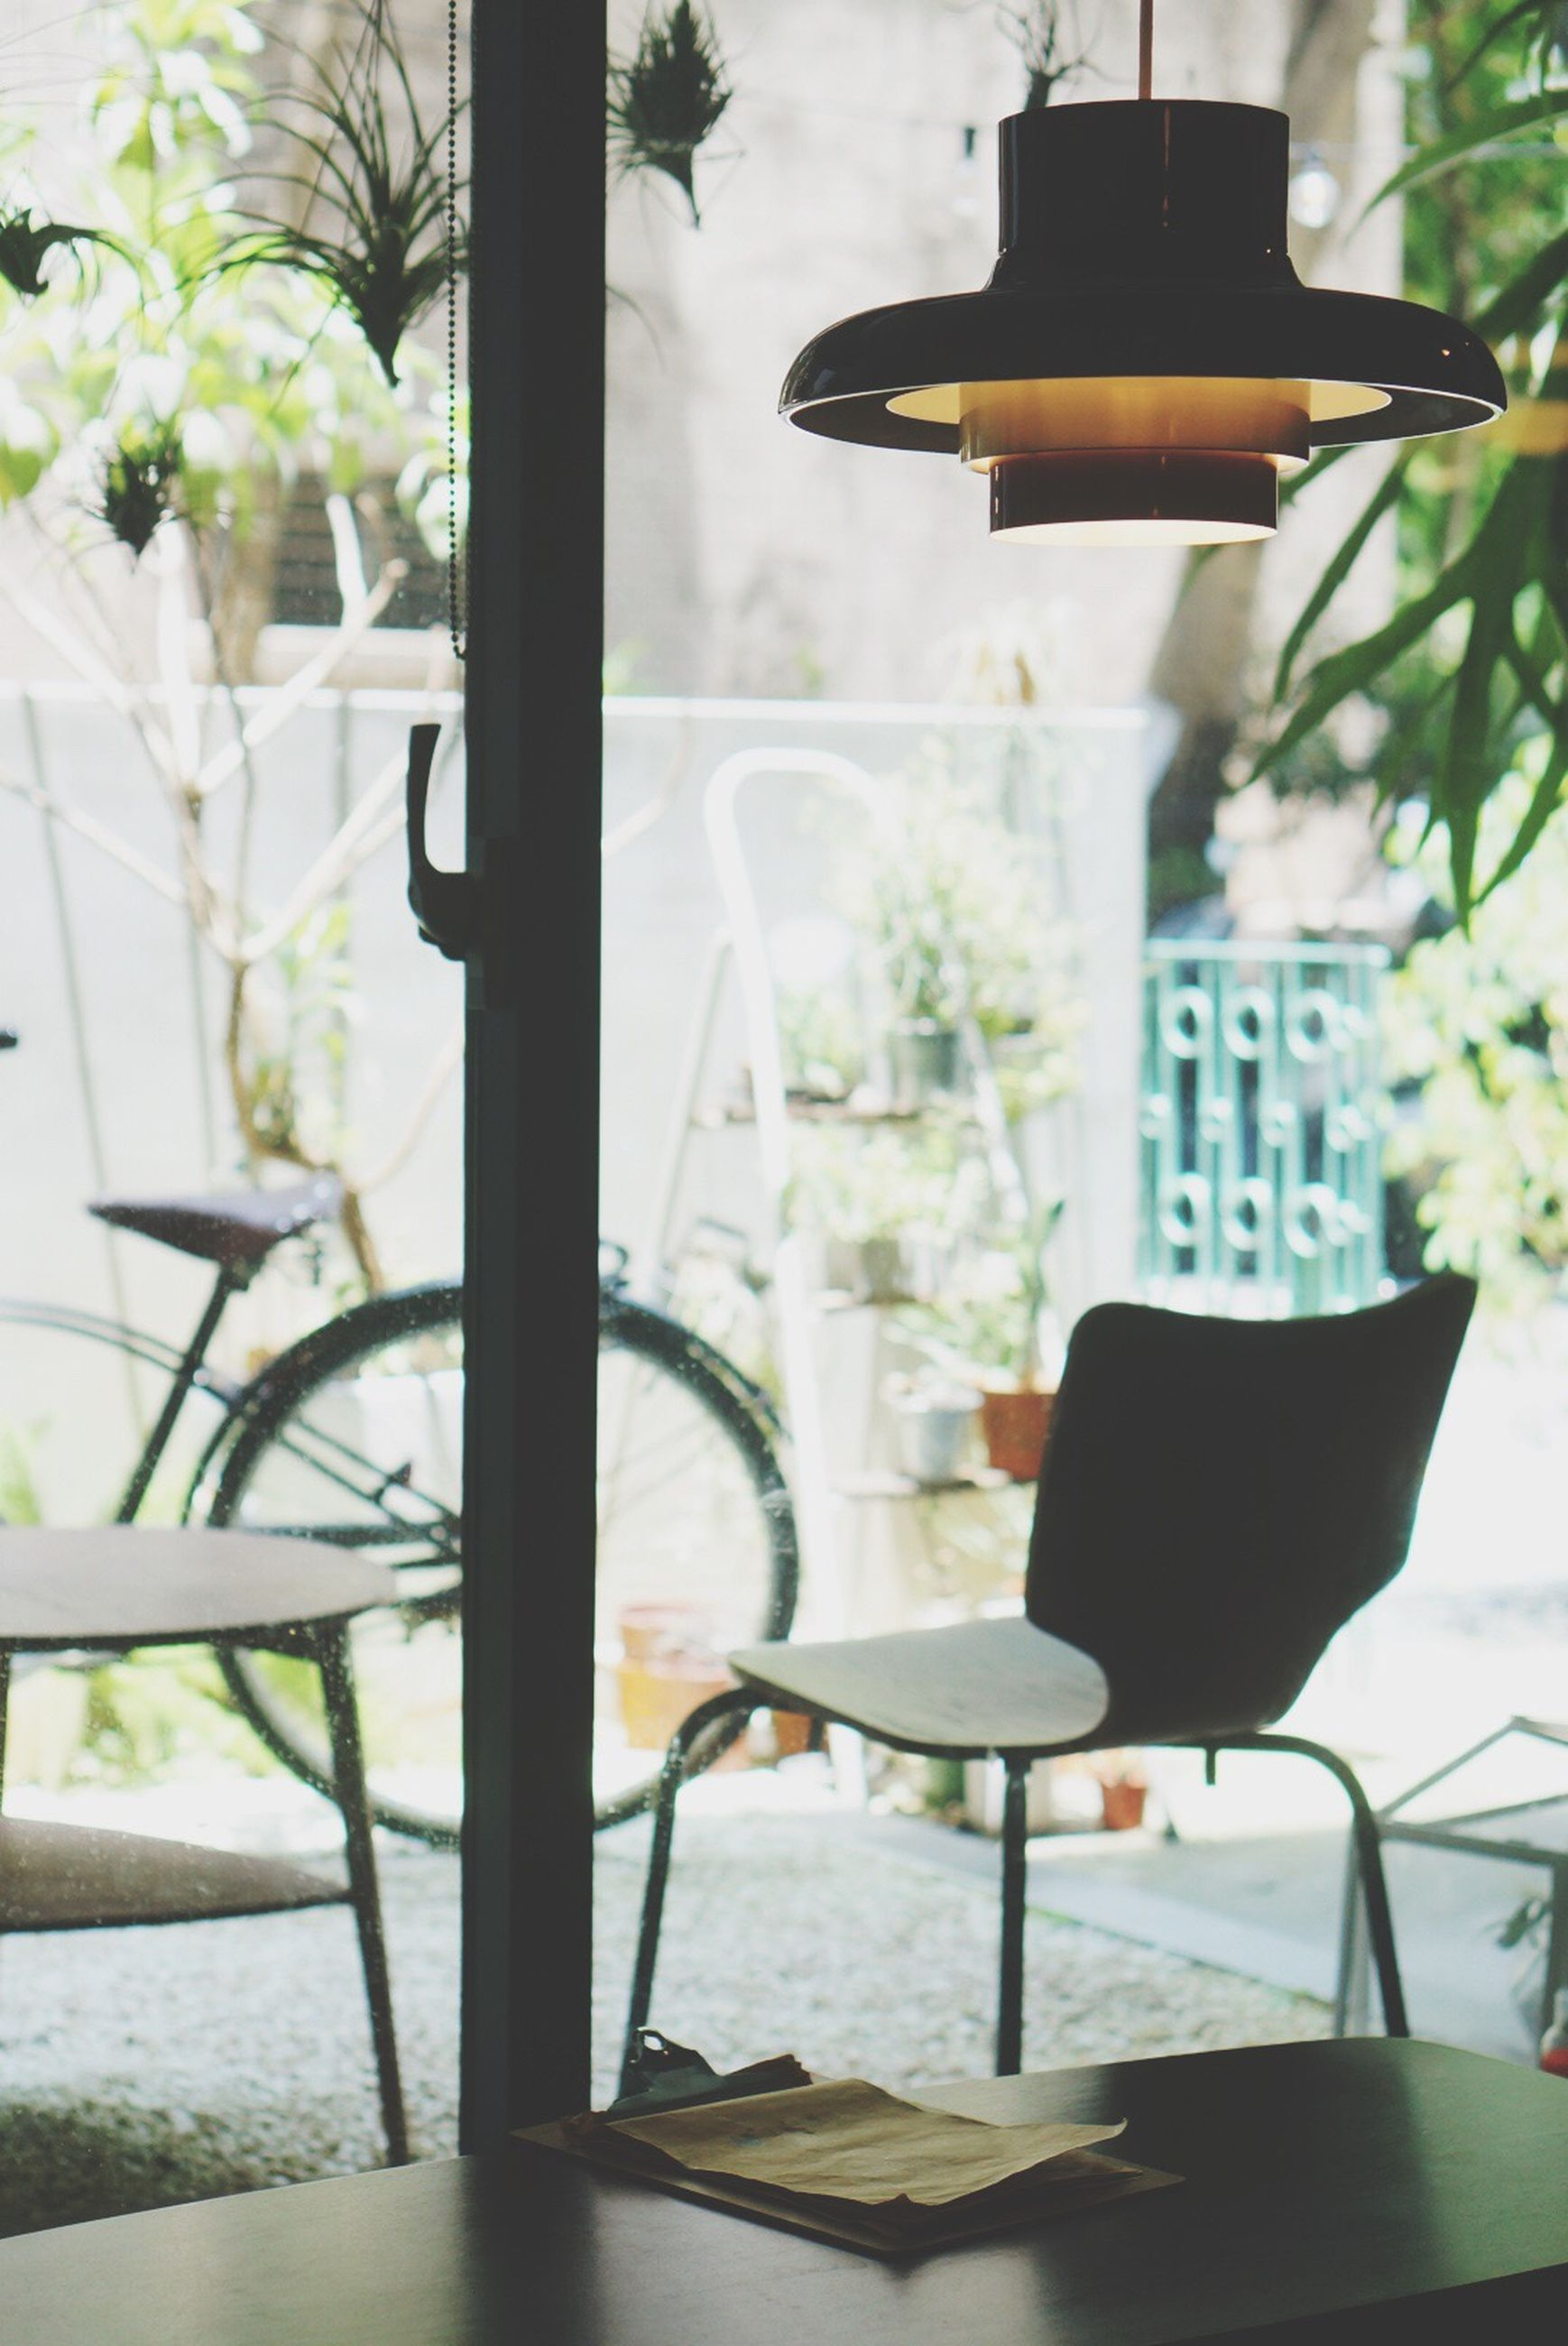 chair, table, potted plant, indoors, absence, home interior, plant, vase, sunlight, furniture, restaurant, window, empty, growth, flower pot, sidewalk cafe, seat, front or back yard, house, no people